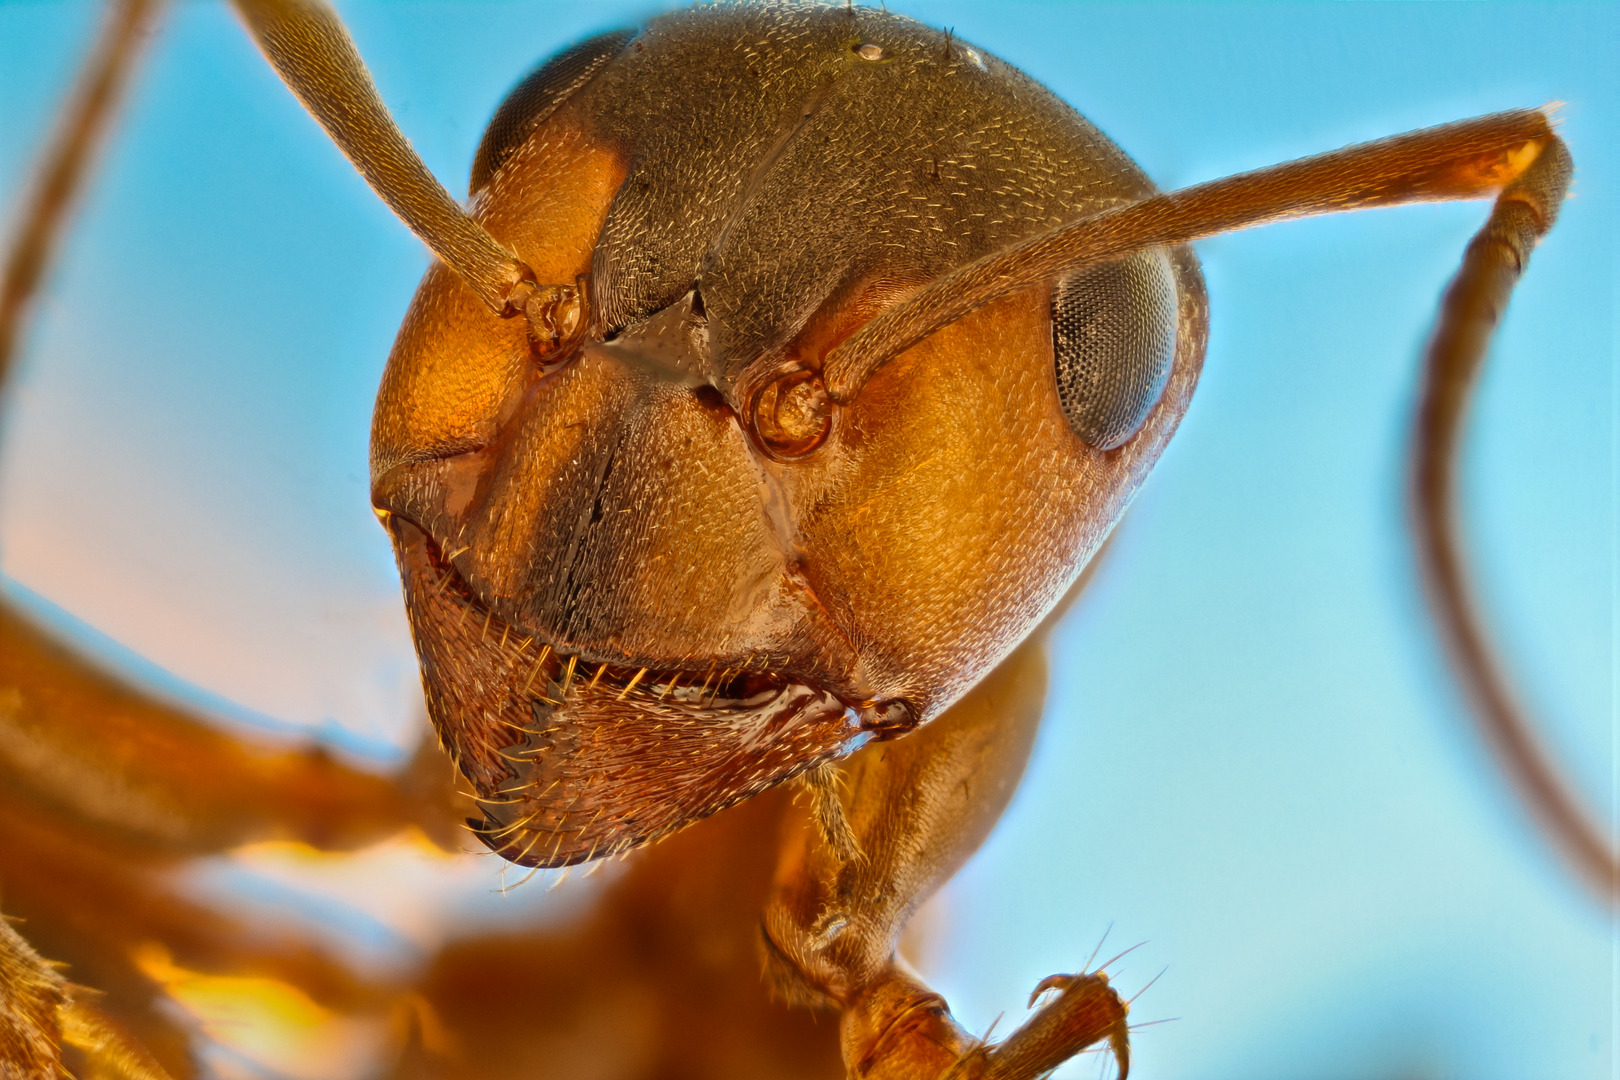 Honorable Mention. Red forest ant (Formica rufa). Image Stacking. 5X (Objective Lens Magnification)